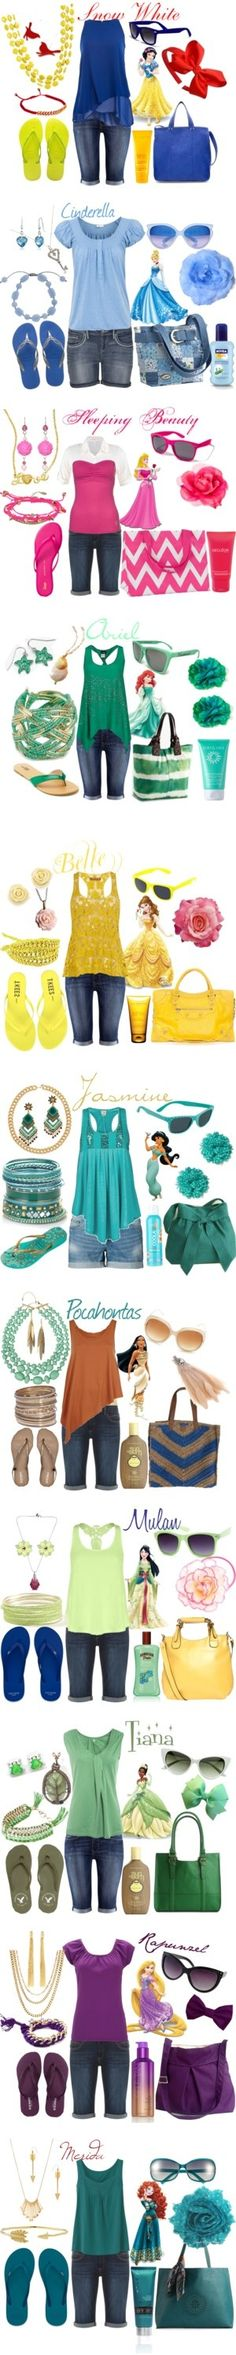 """Park Princesses"" by merahzinnia on Polyvore"